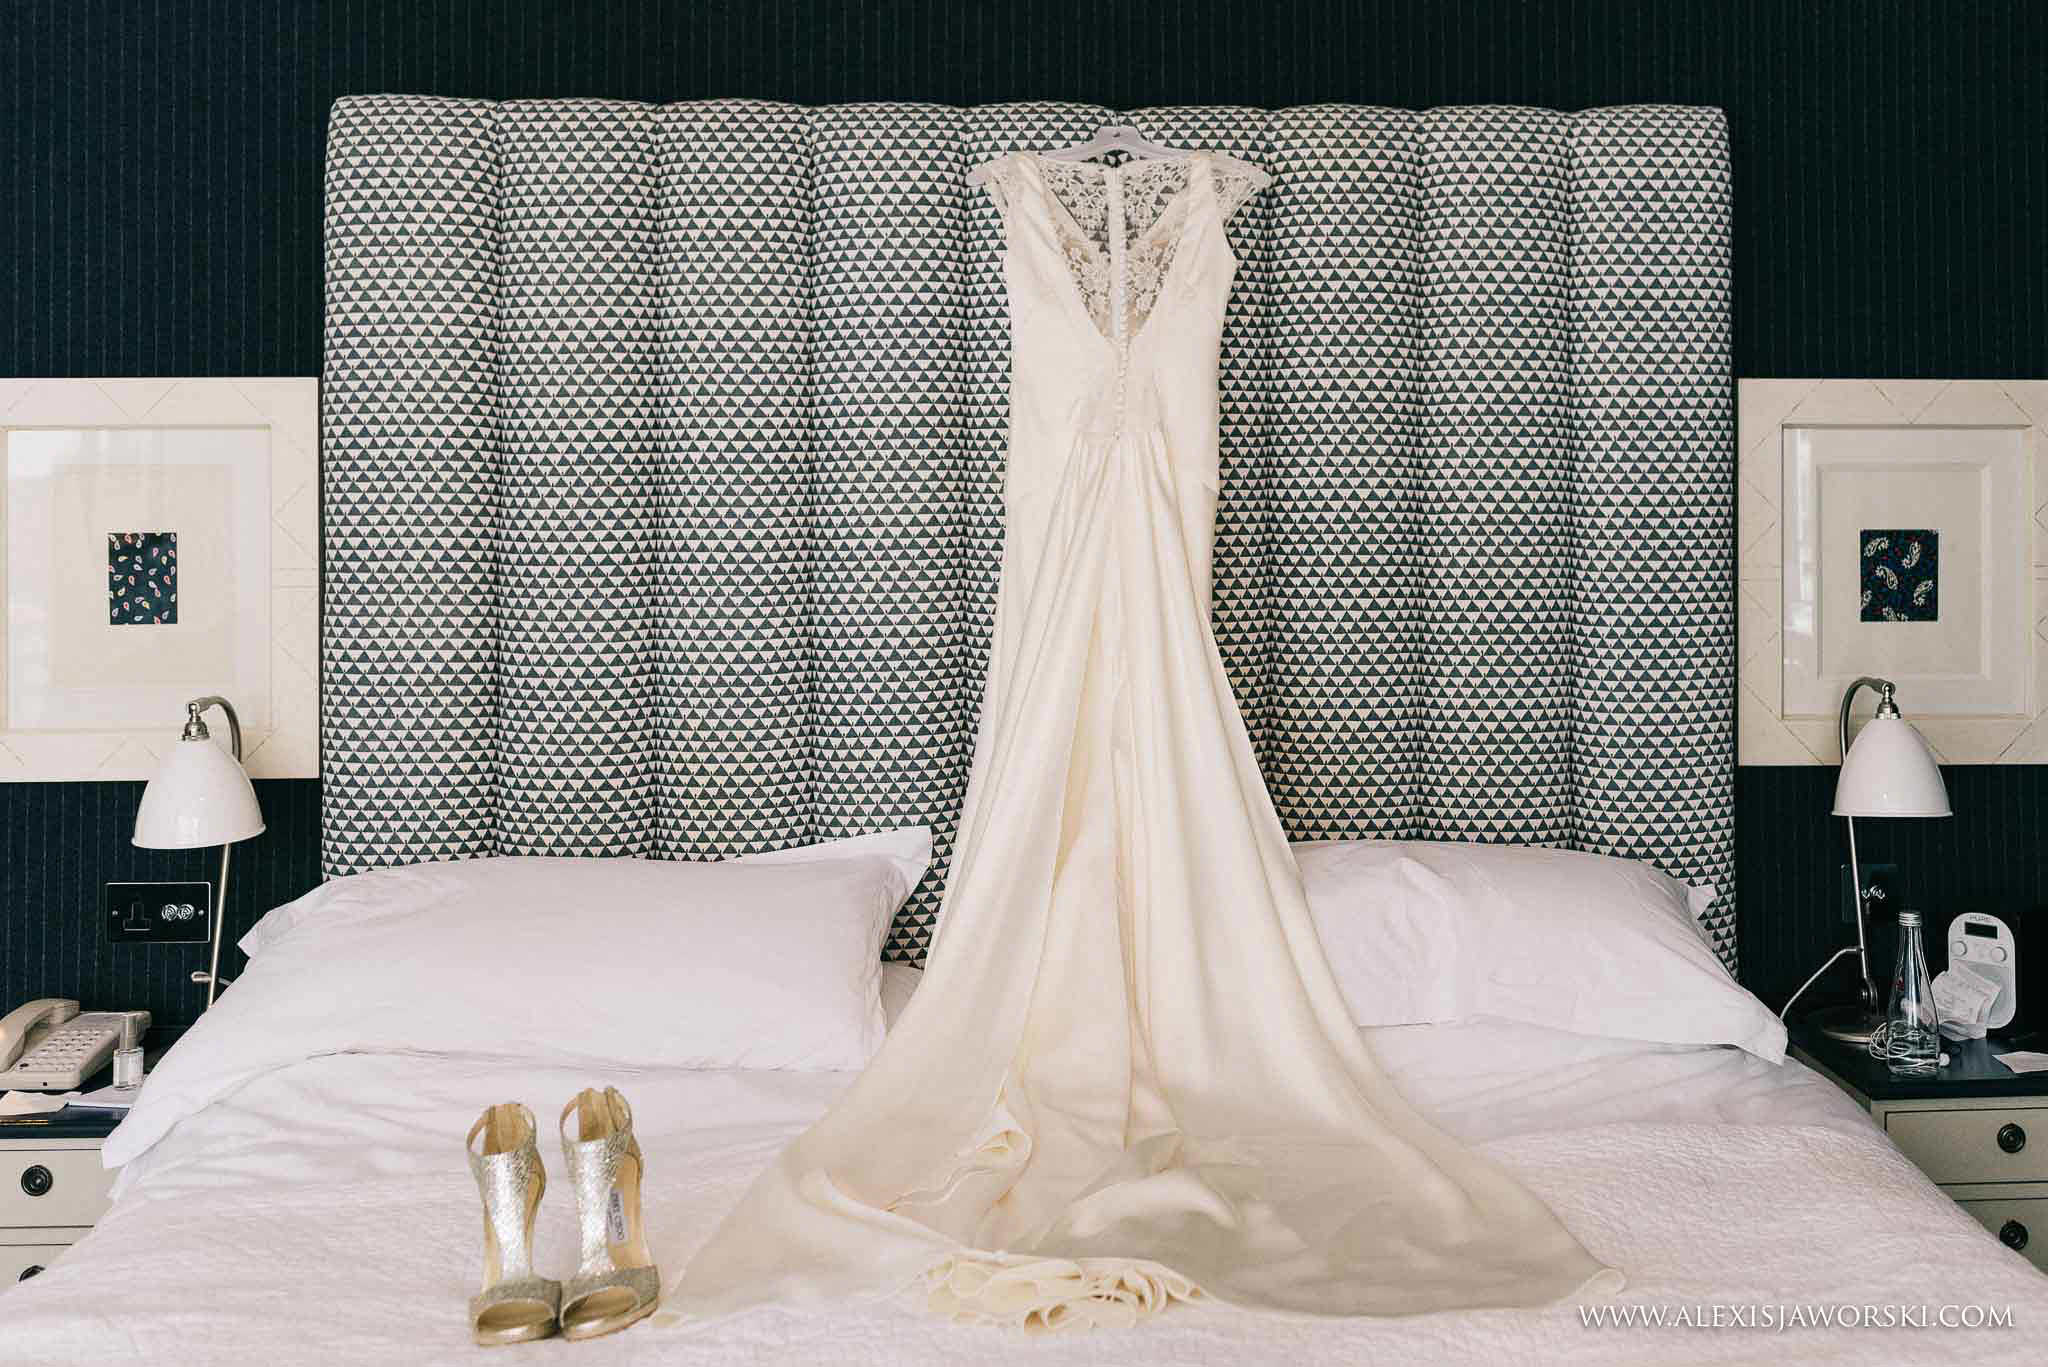 the dress and wedding shoes